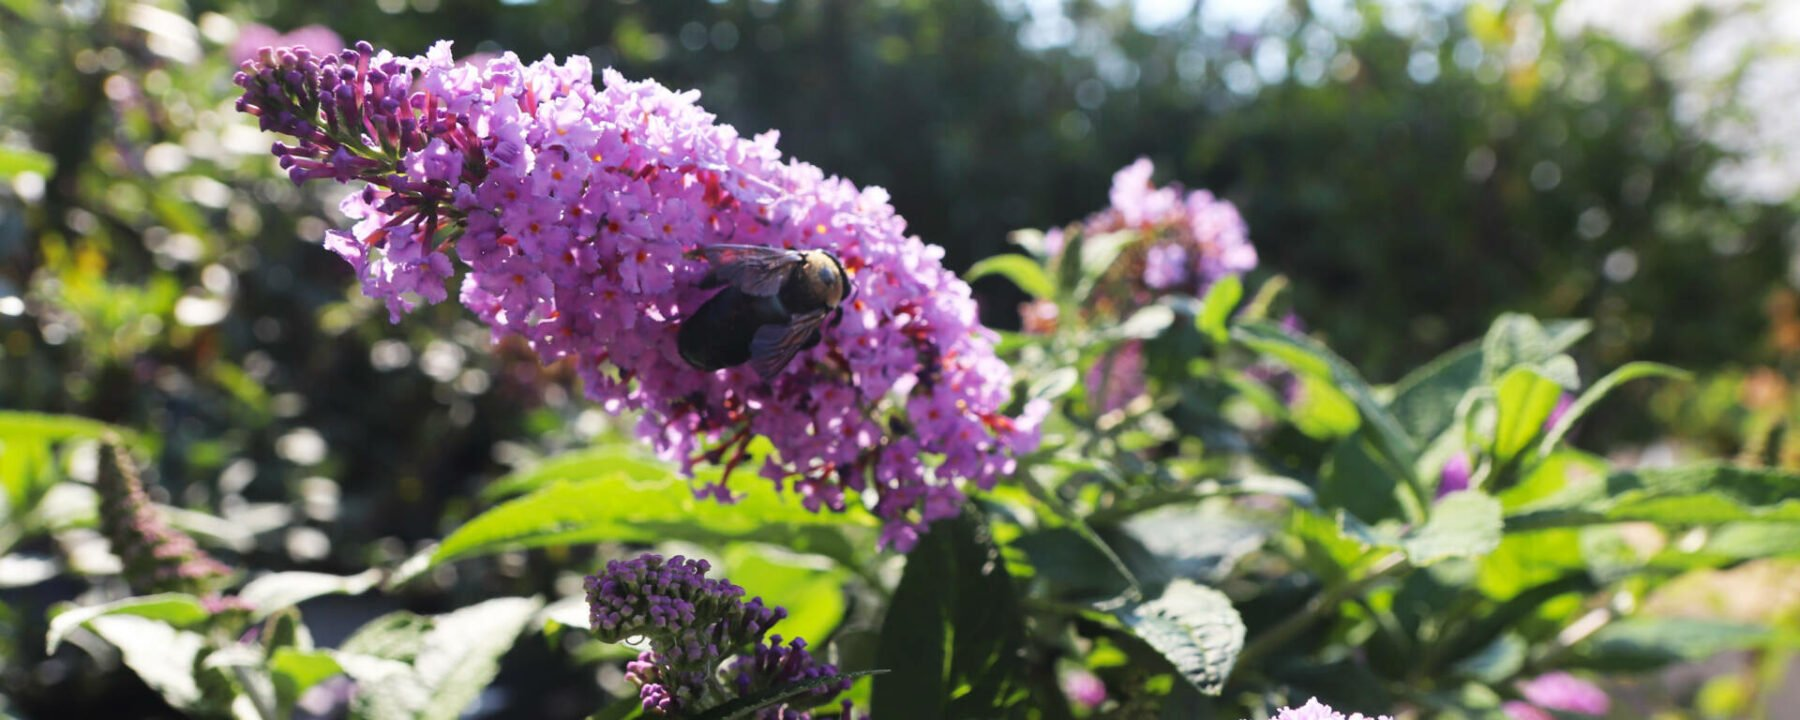 Bees and Butterflies active in the landscape 08272021